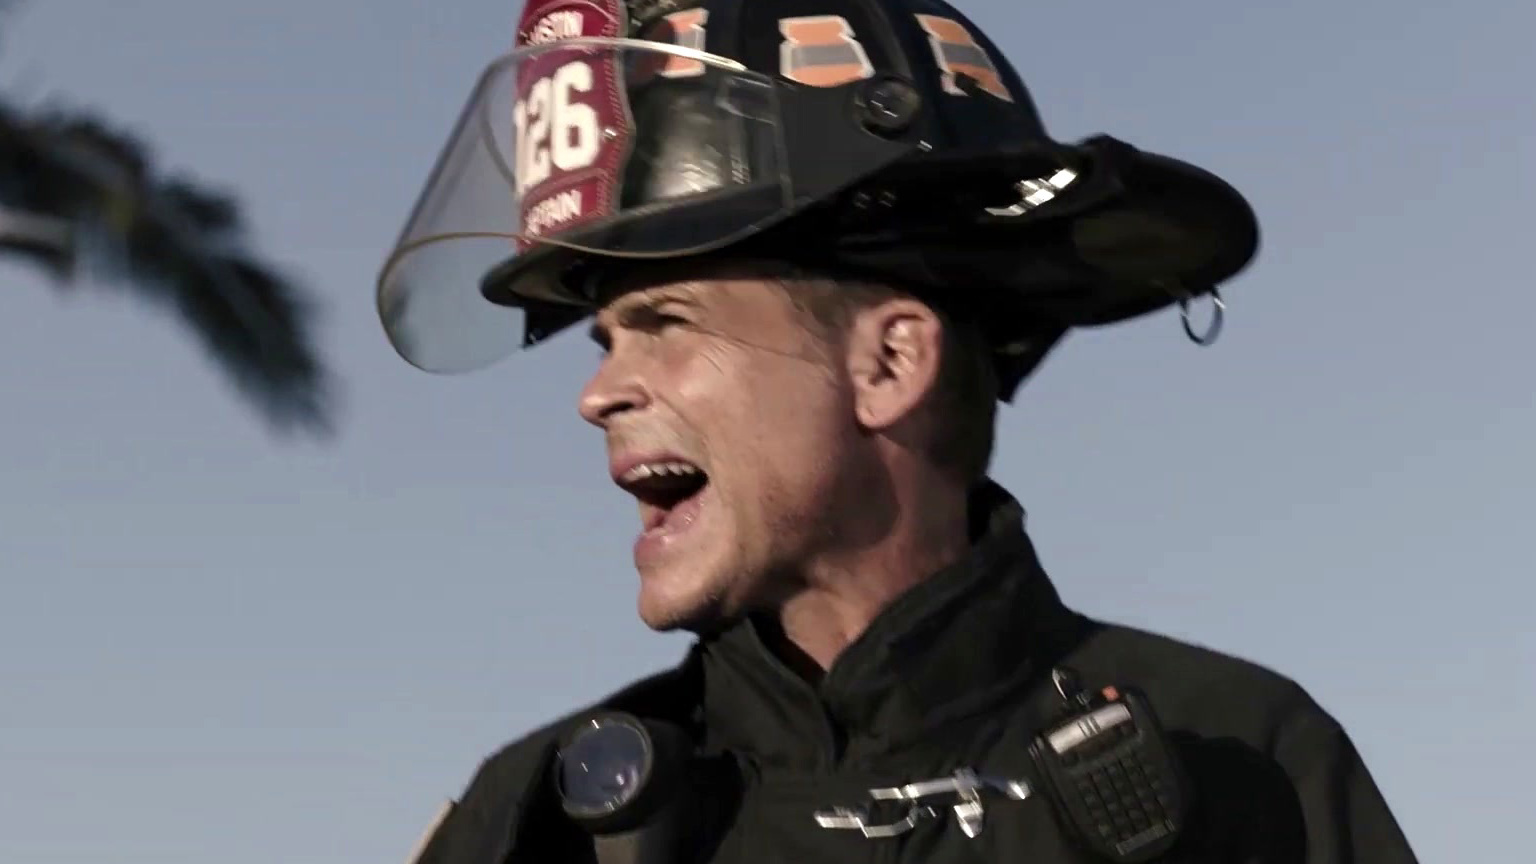 9-1-1: Lone Star: The Team Encounters An Unexpected Explosion